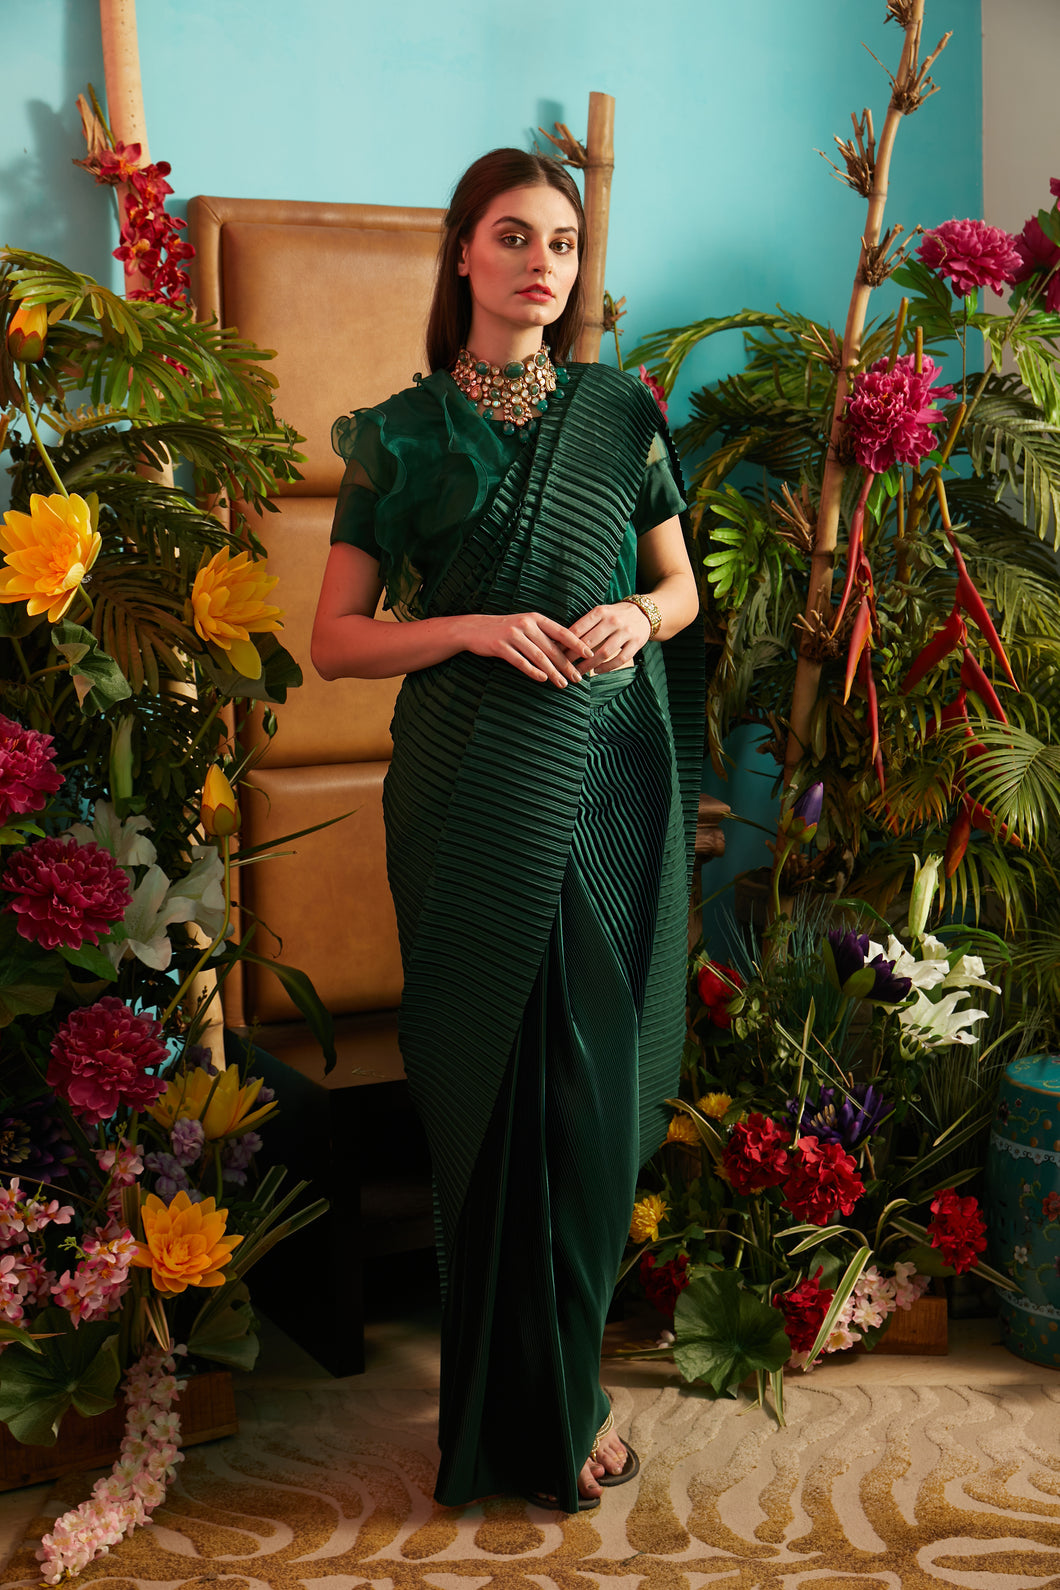 Scintillating Sewed Pleated Saree with Ruffle Blouse - Green